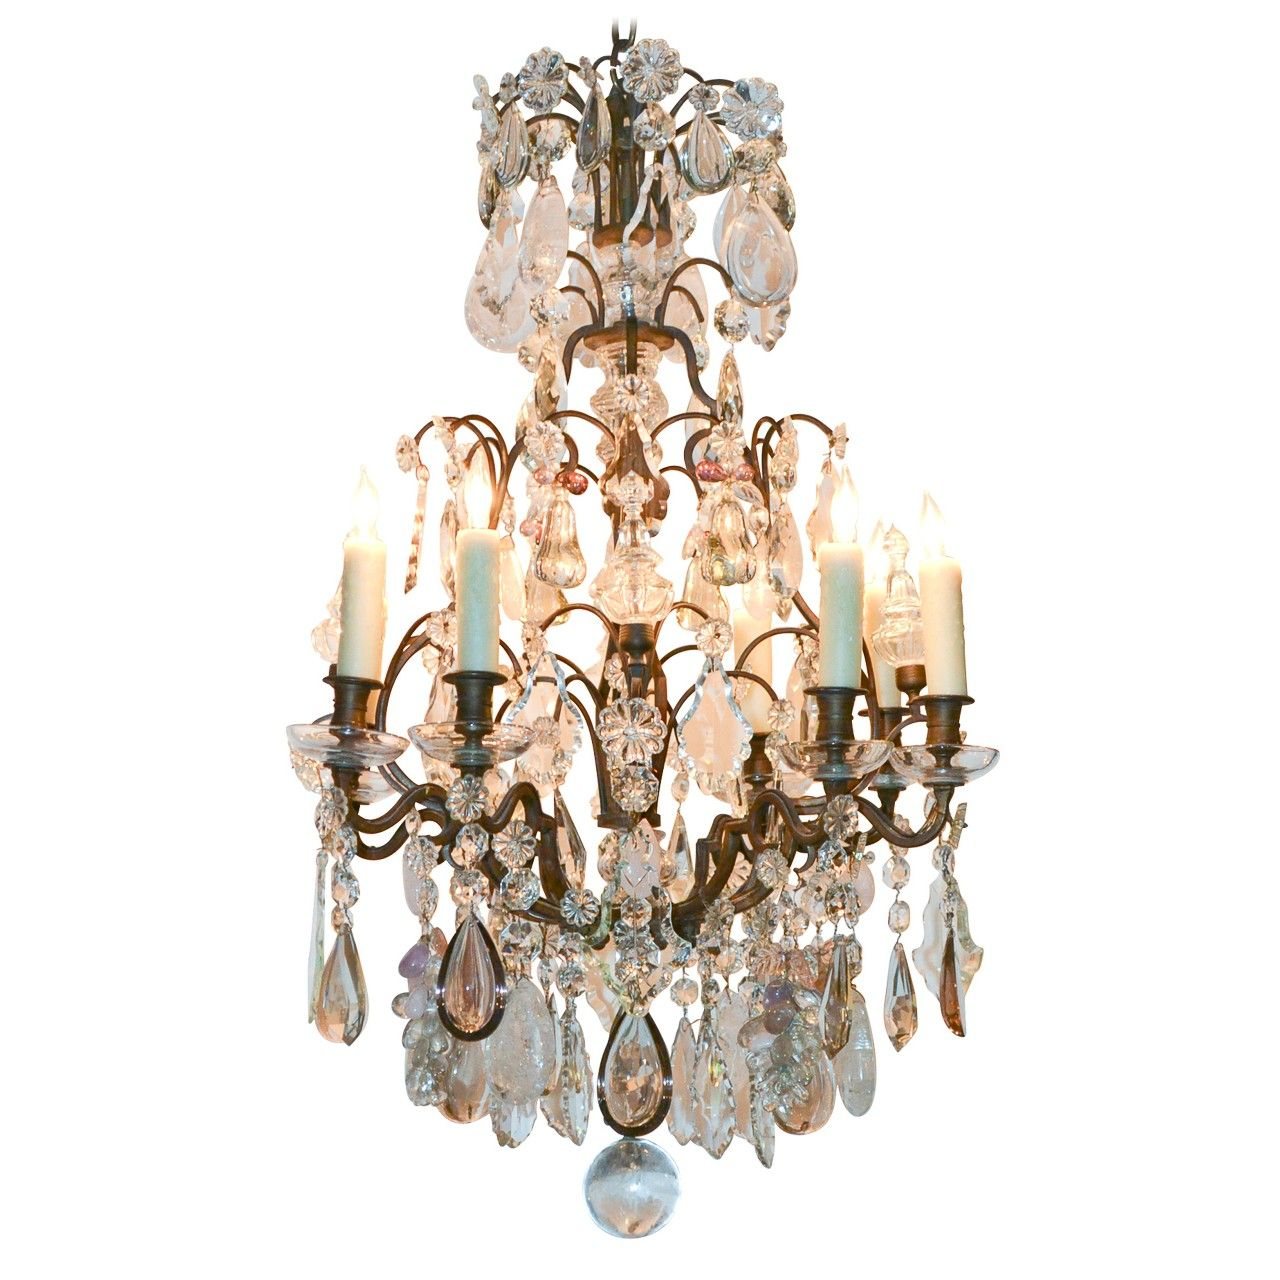 19th C. French Rock Crystal Chandelier - Antique Chandeliers - Antique  Lighting… - 19th C. French Rock Crystal Chandelier - Antique Chandeliers